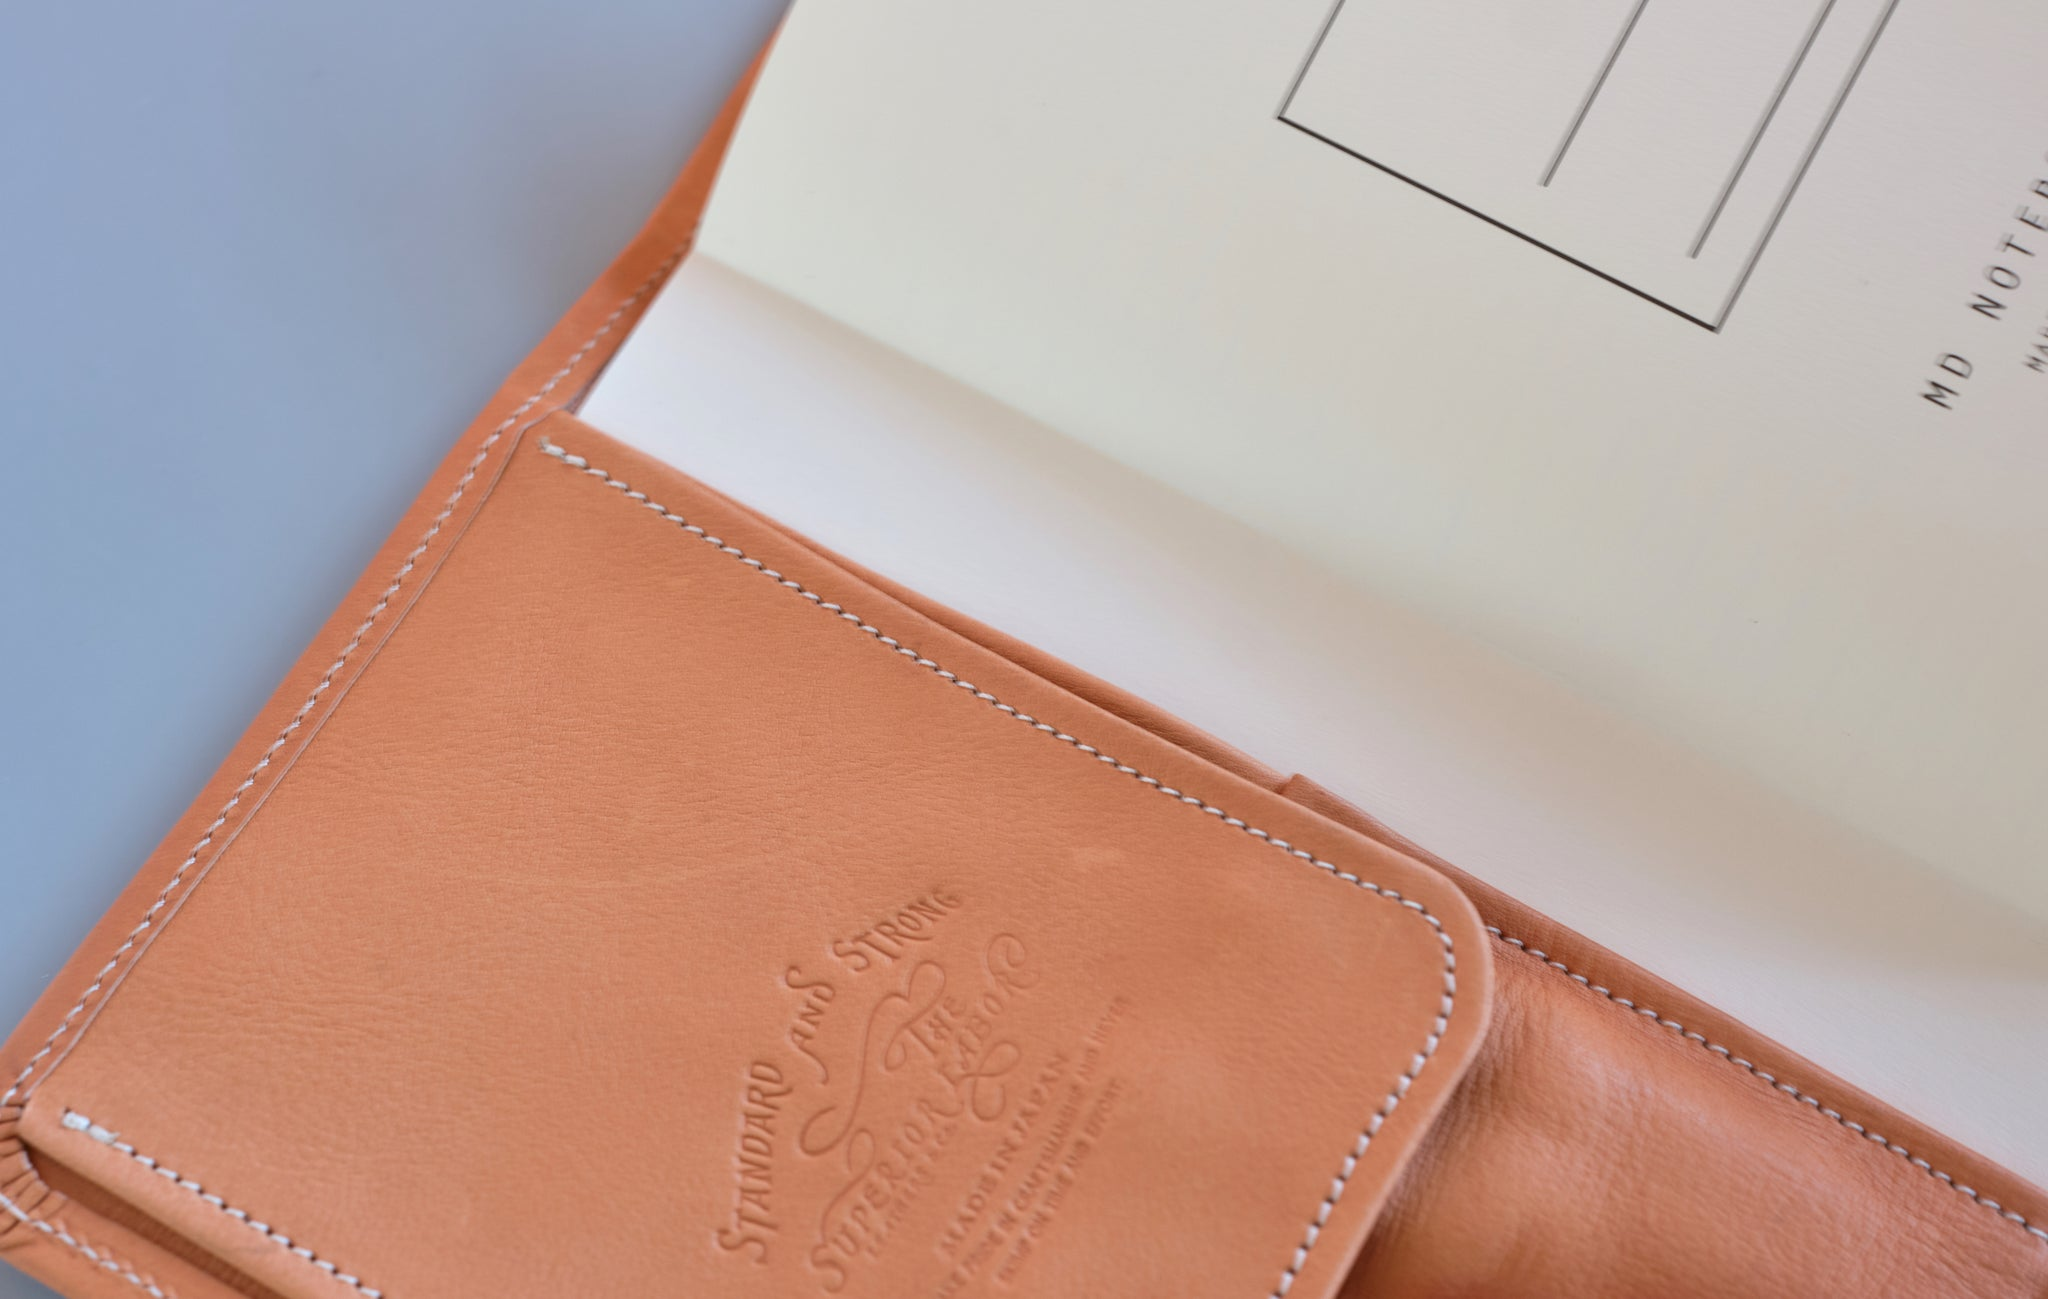 THE SUPERIOR LABOR X NOMADO STORE A5 LEATHER WRITER'S ORGANIZER